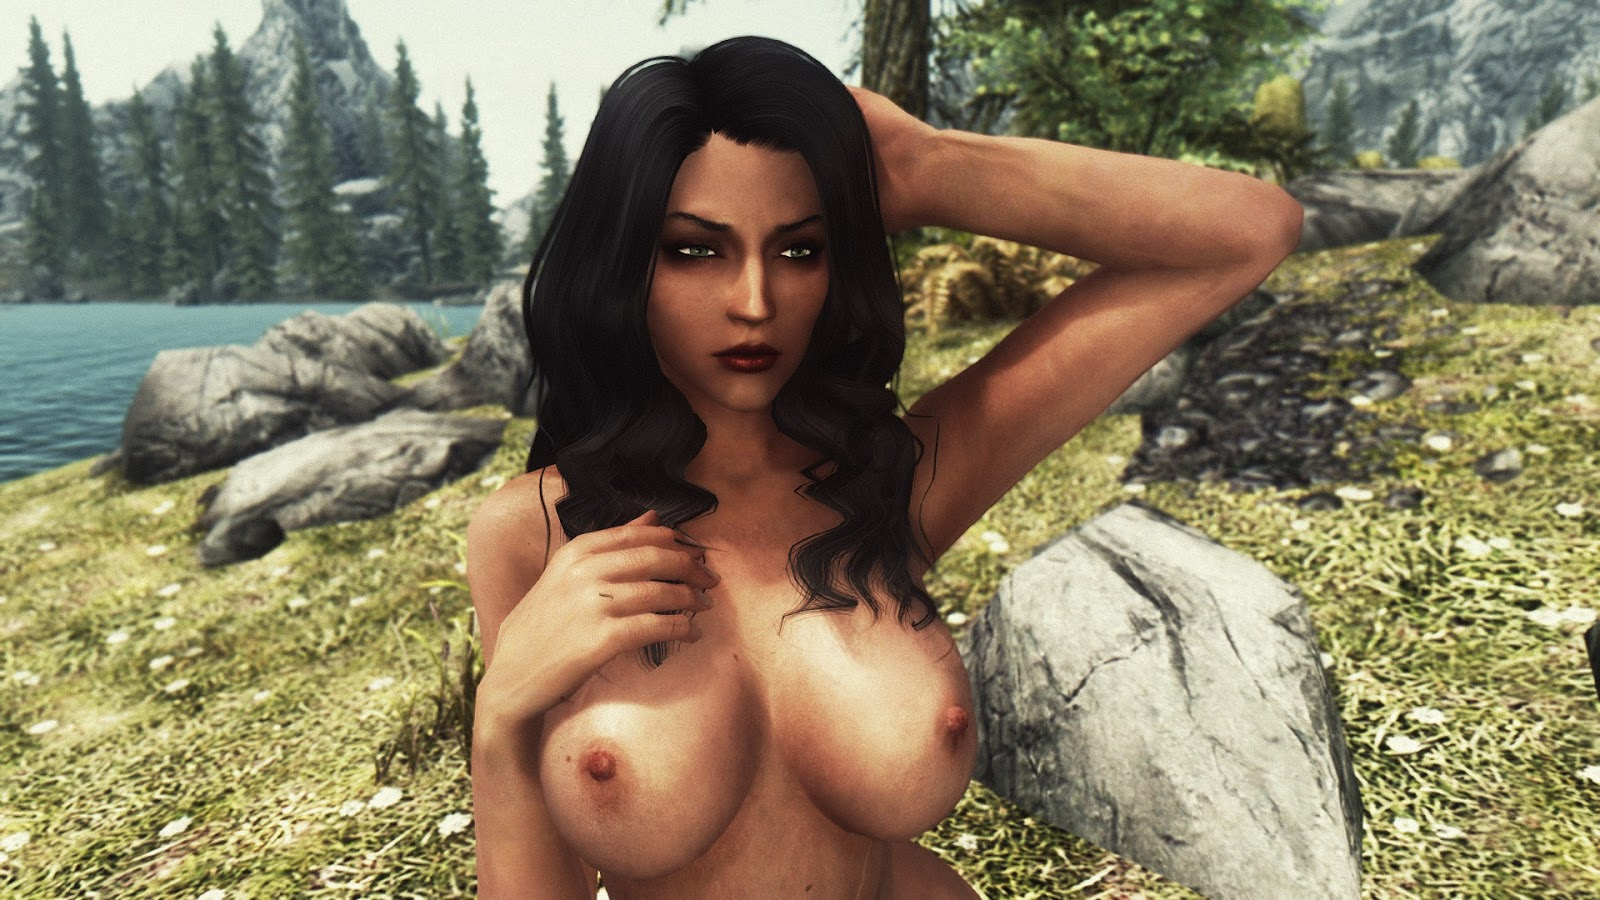 Skyrim hd nud porn videos